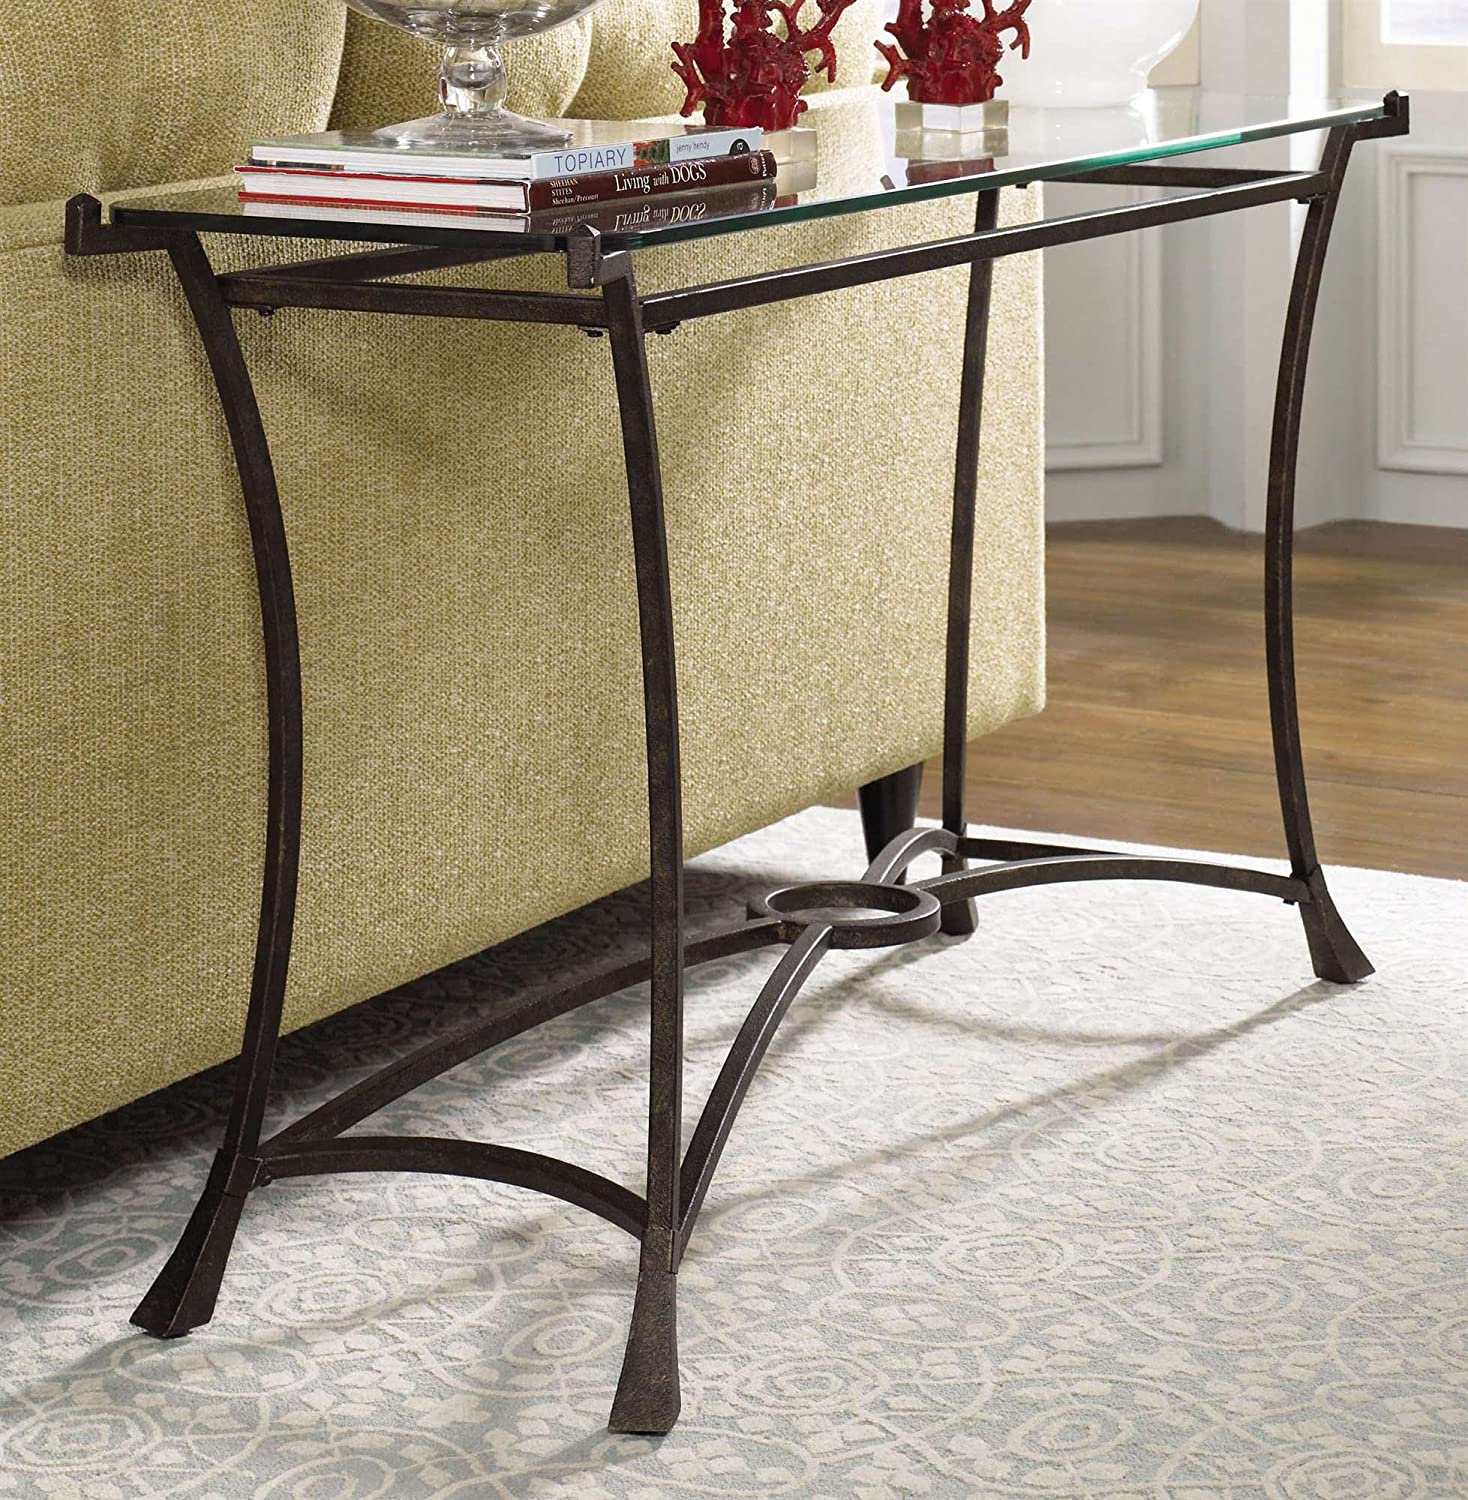 Surprising Hammary Sutton Sofa Table Dailytribune Chair Design For Home Dailytribuneorg